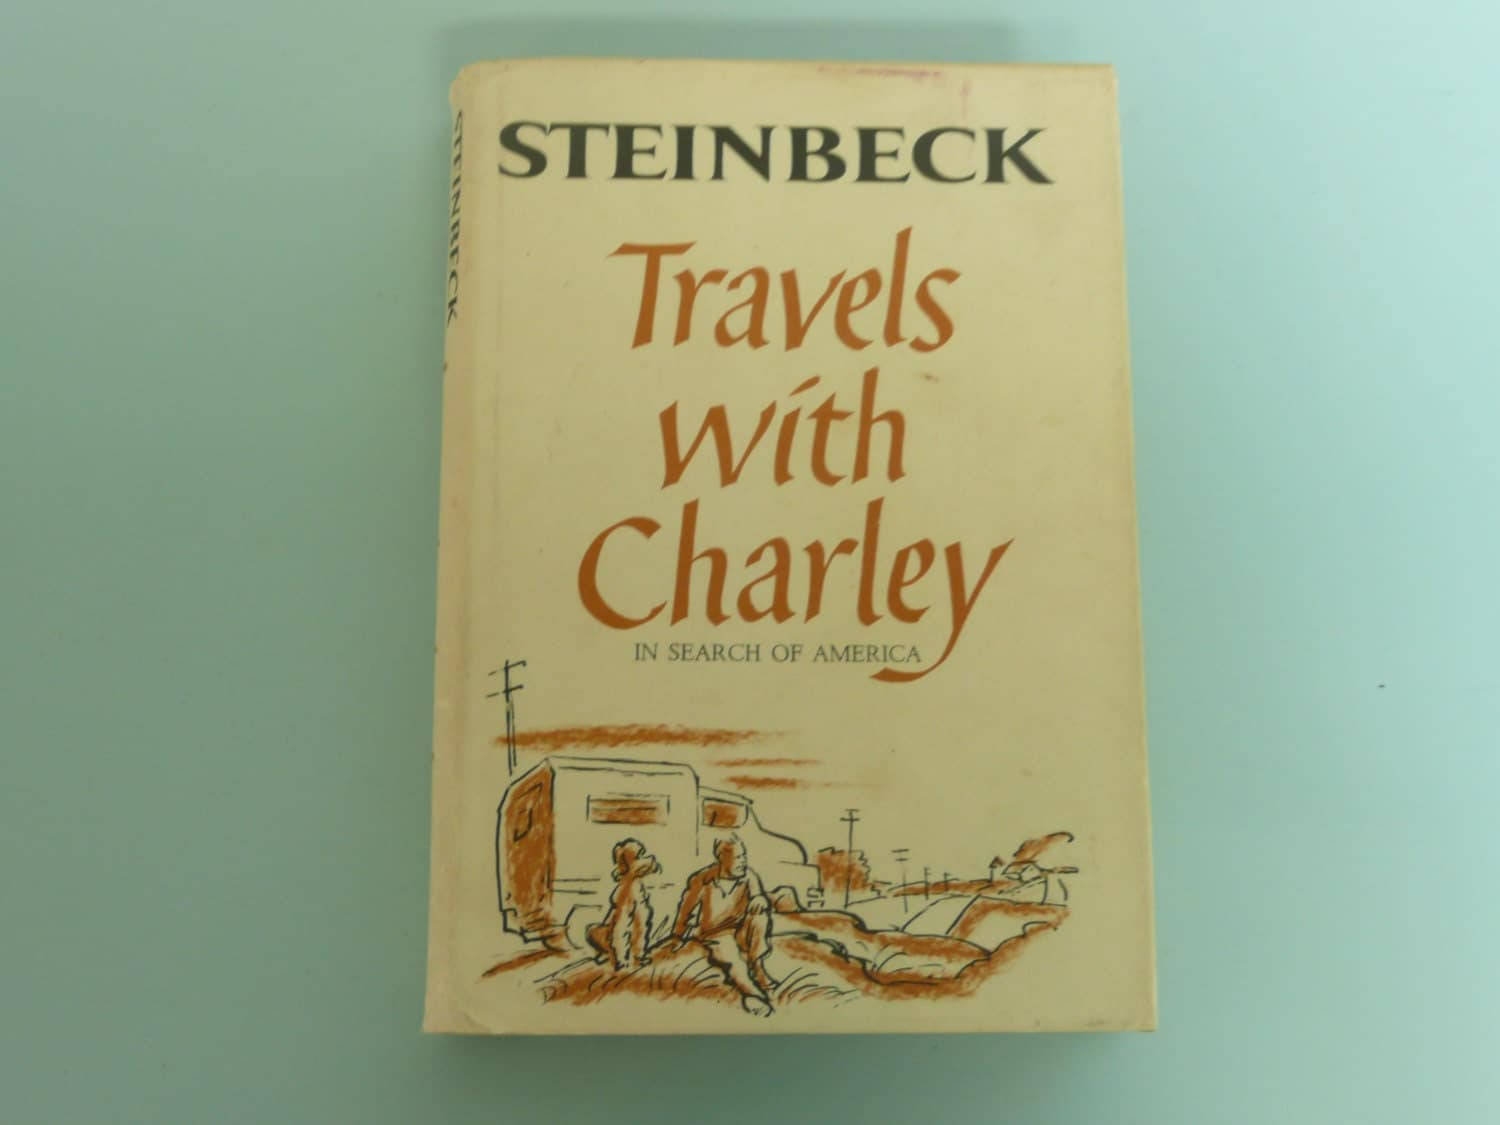 travels with charley steinbeck essay An analysis of travels with charley, an essay by john steinbeck pages 1 words 382 view full essay more essays like this:  john steinbeck, travels with charley.